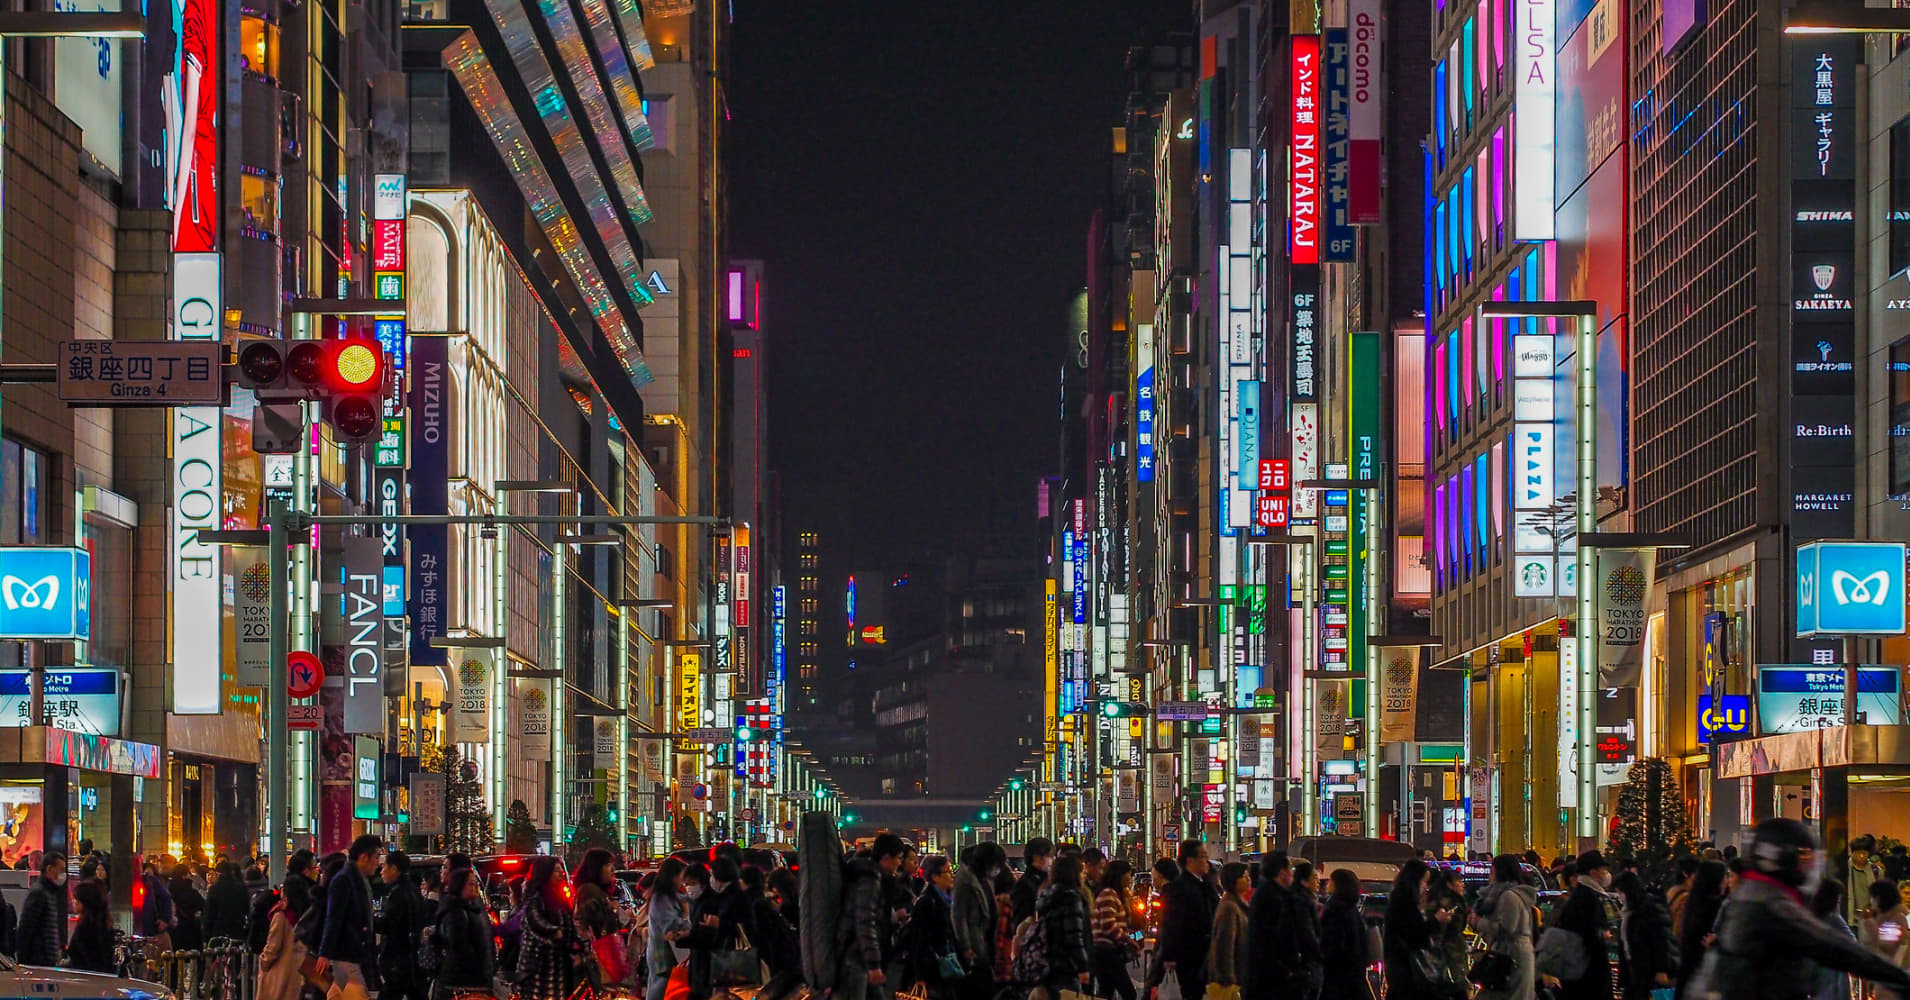 Top luxury shopping streets with multi colored neon signs in Tokyo, Japan.